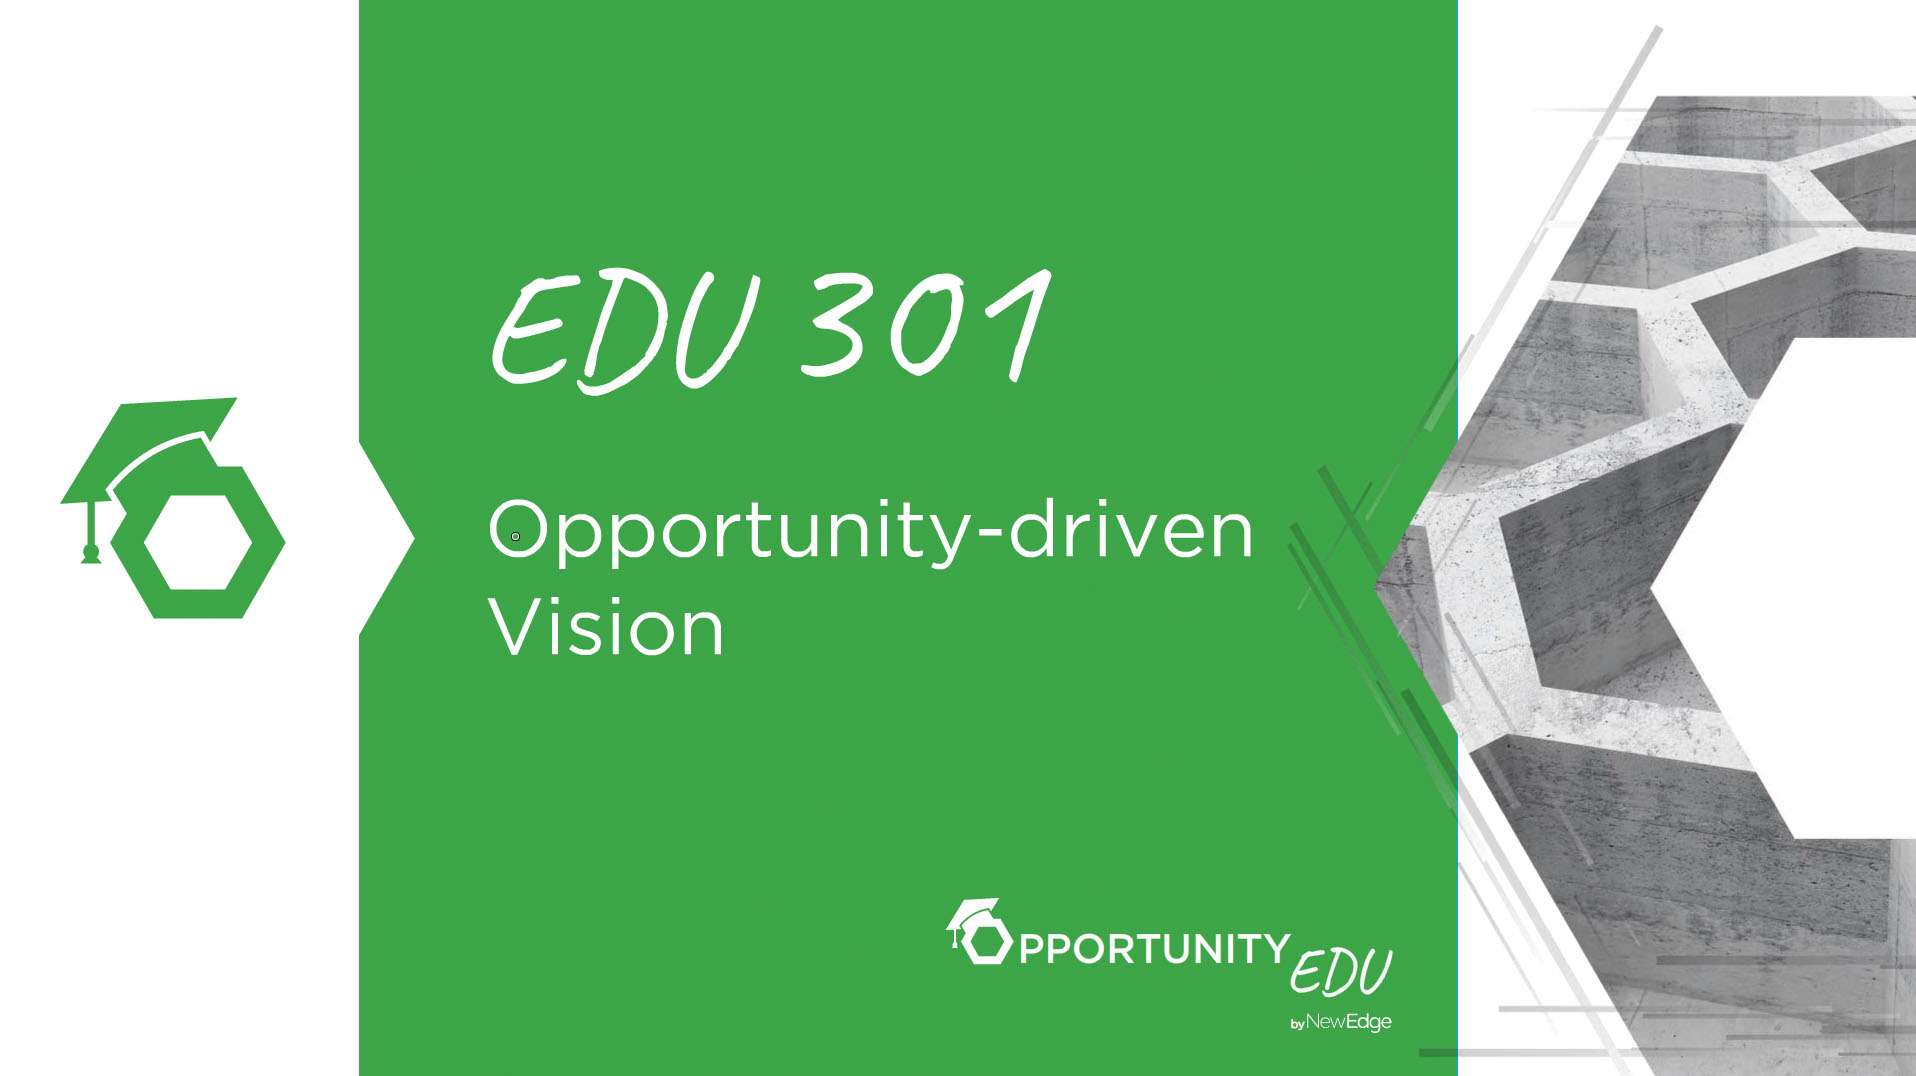 EDU 301 Opportunity-driven Vision